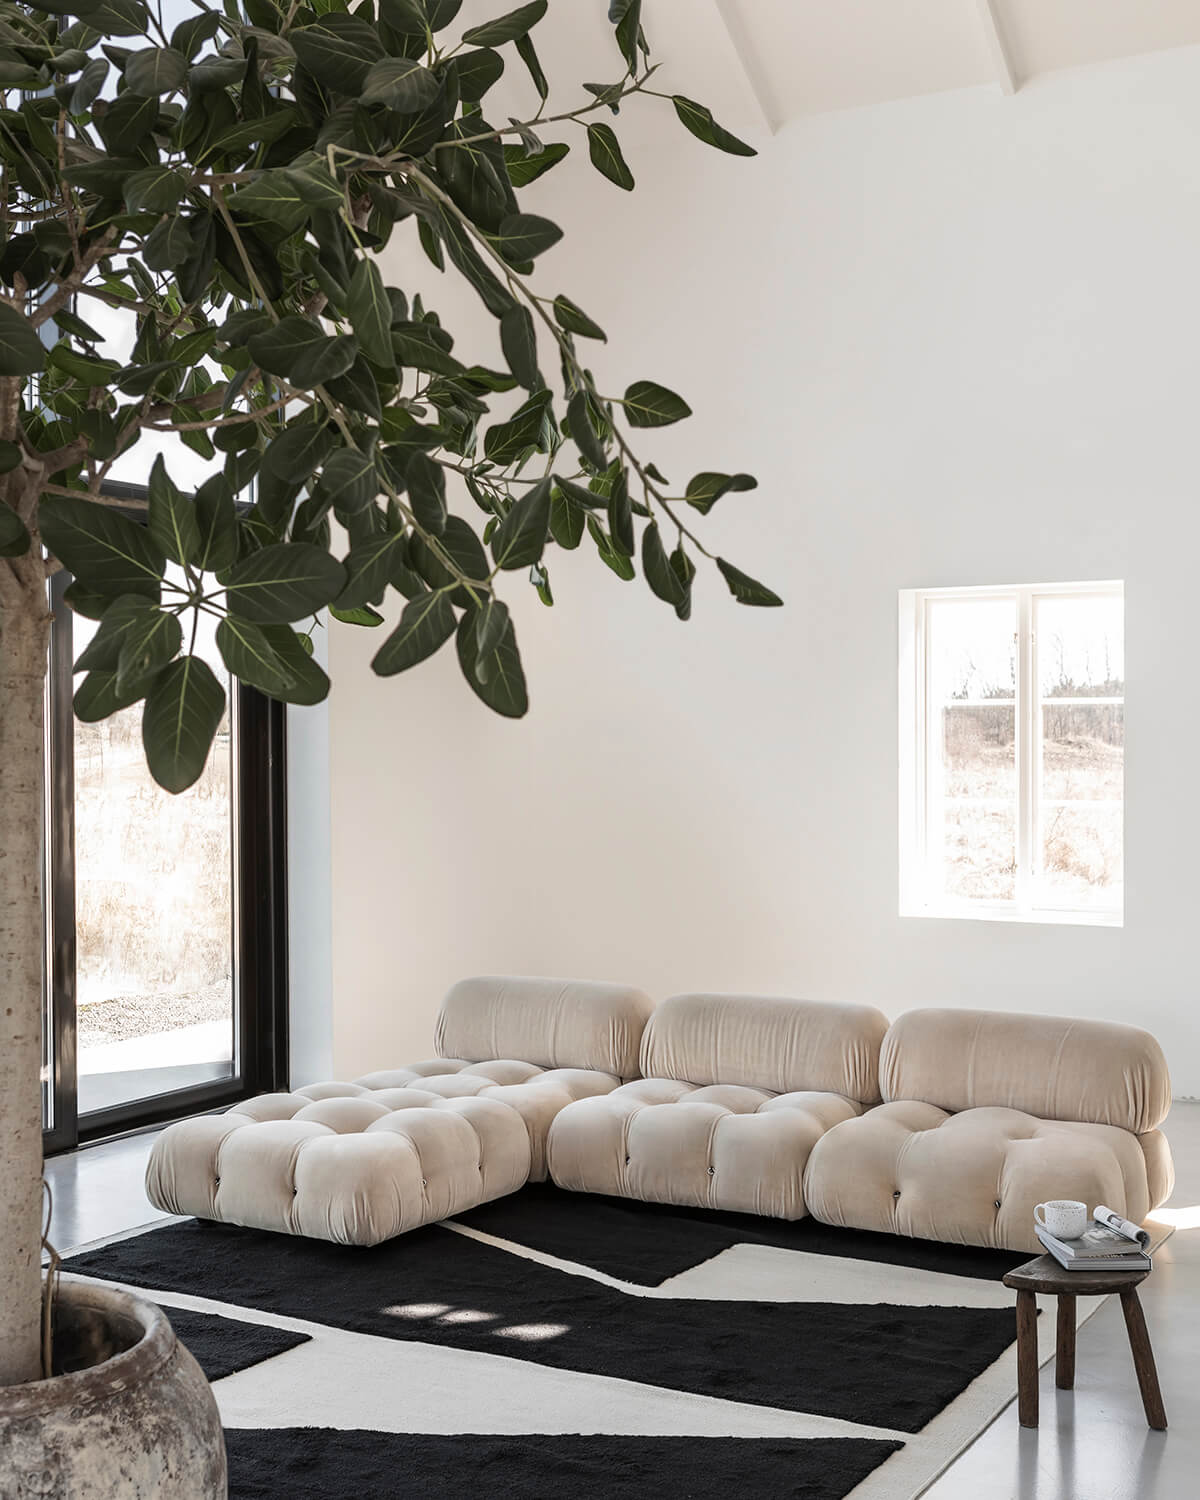 Untitled 1 in a white living room space with a tree in the foreground.